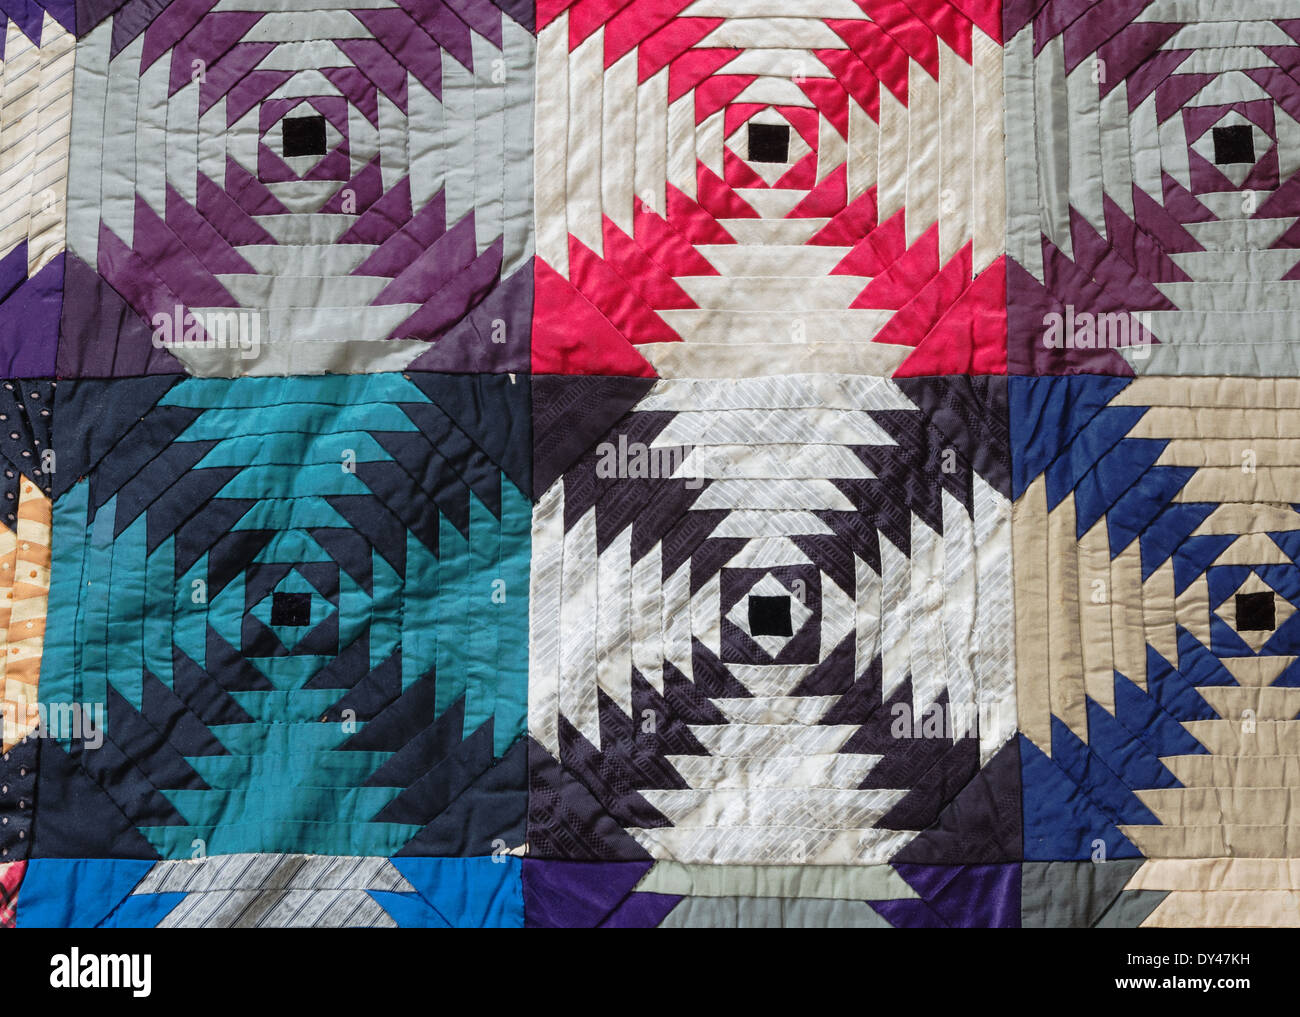 vintage pineapple hand stitched quilt detail - Stock Image